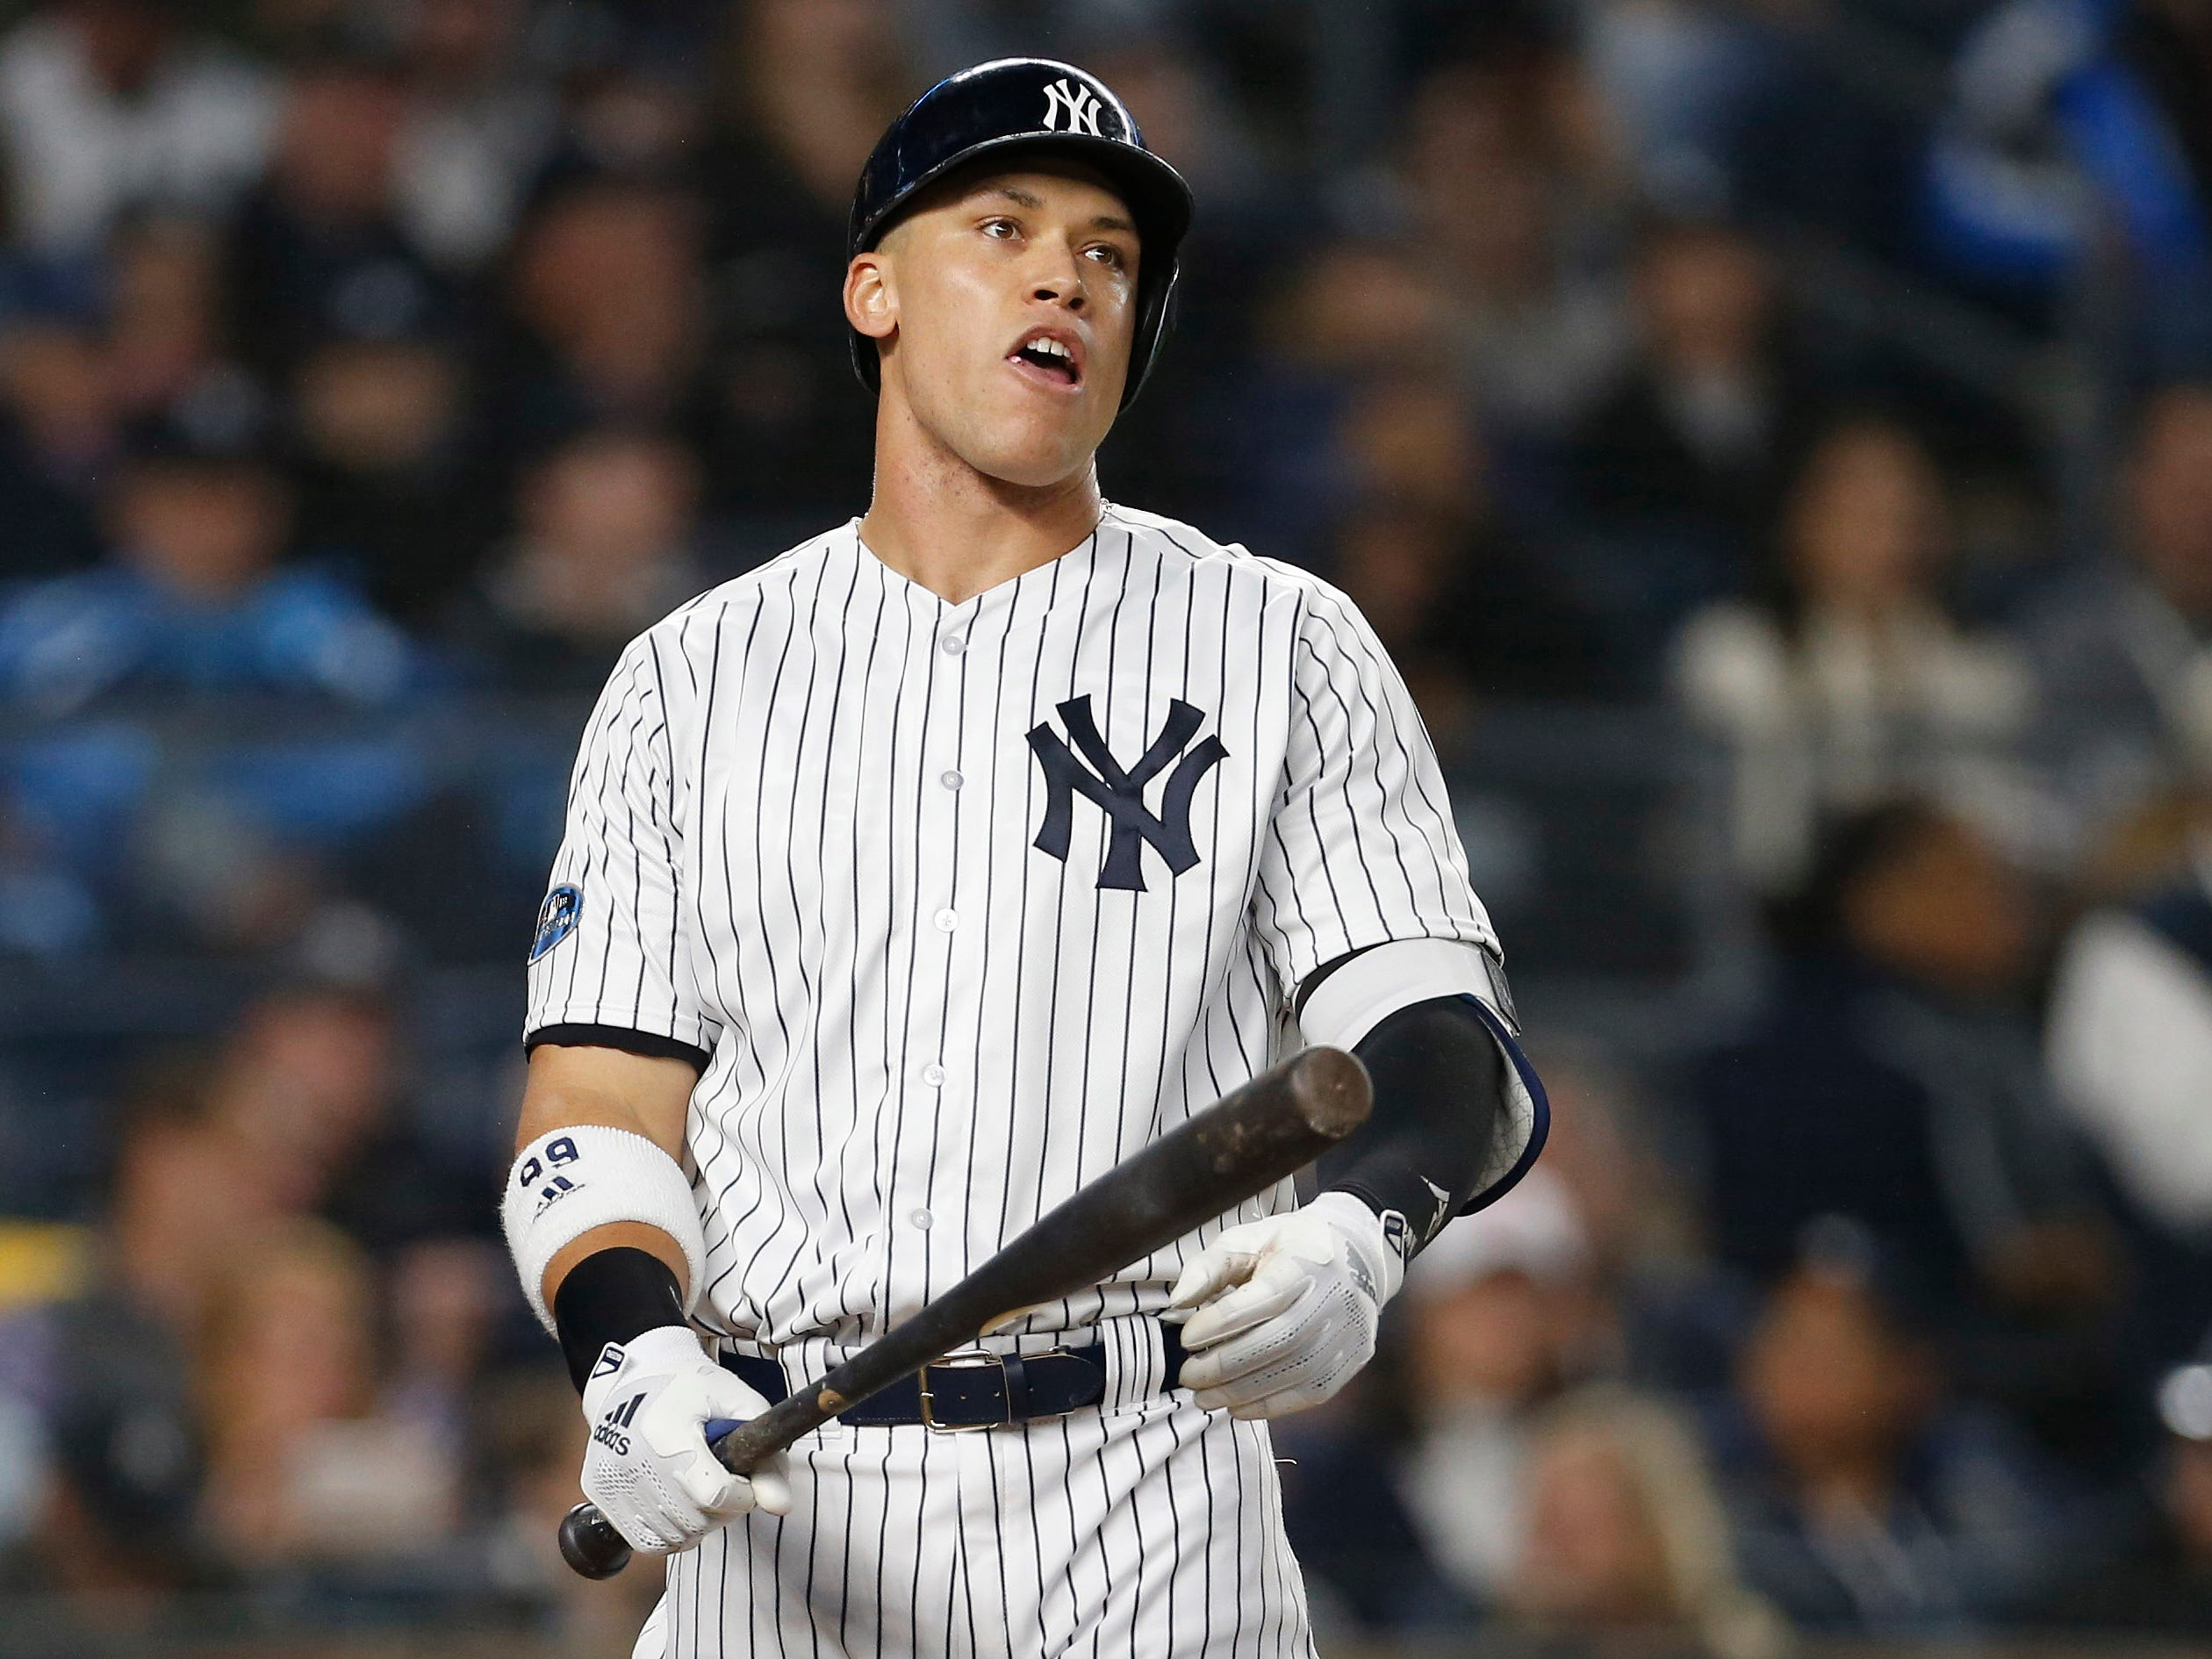 ALDS Game 3: Yankees right fielder Aaron Judge reacts after lining out in the first inning.